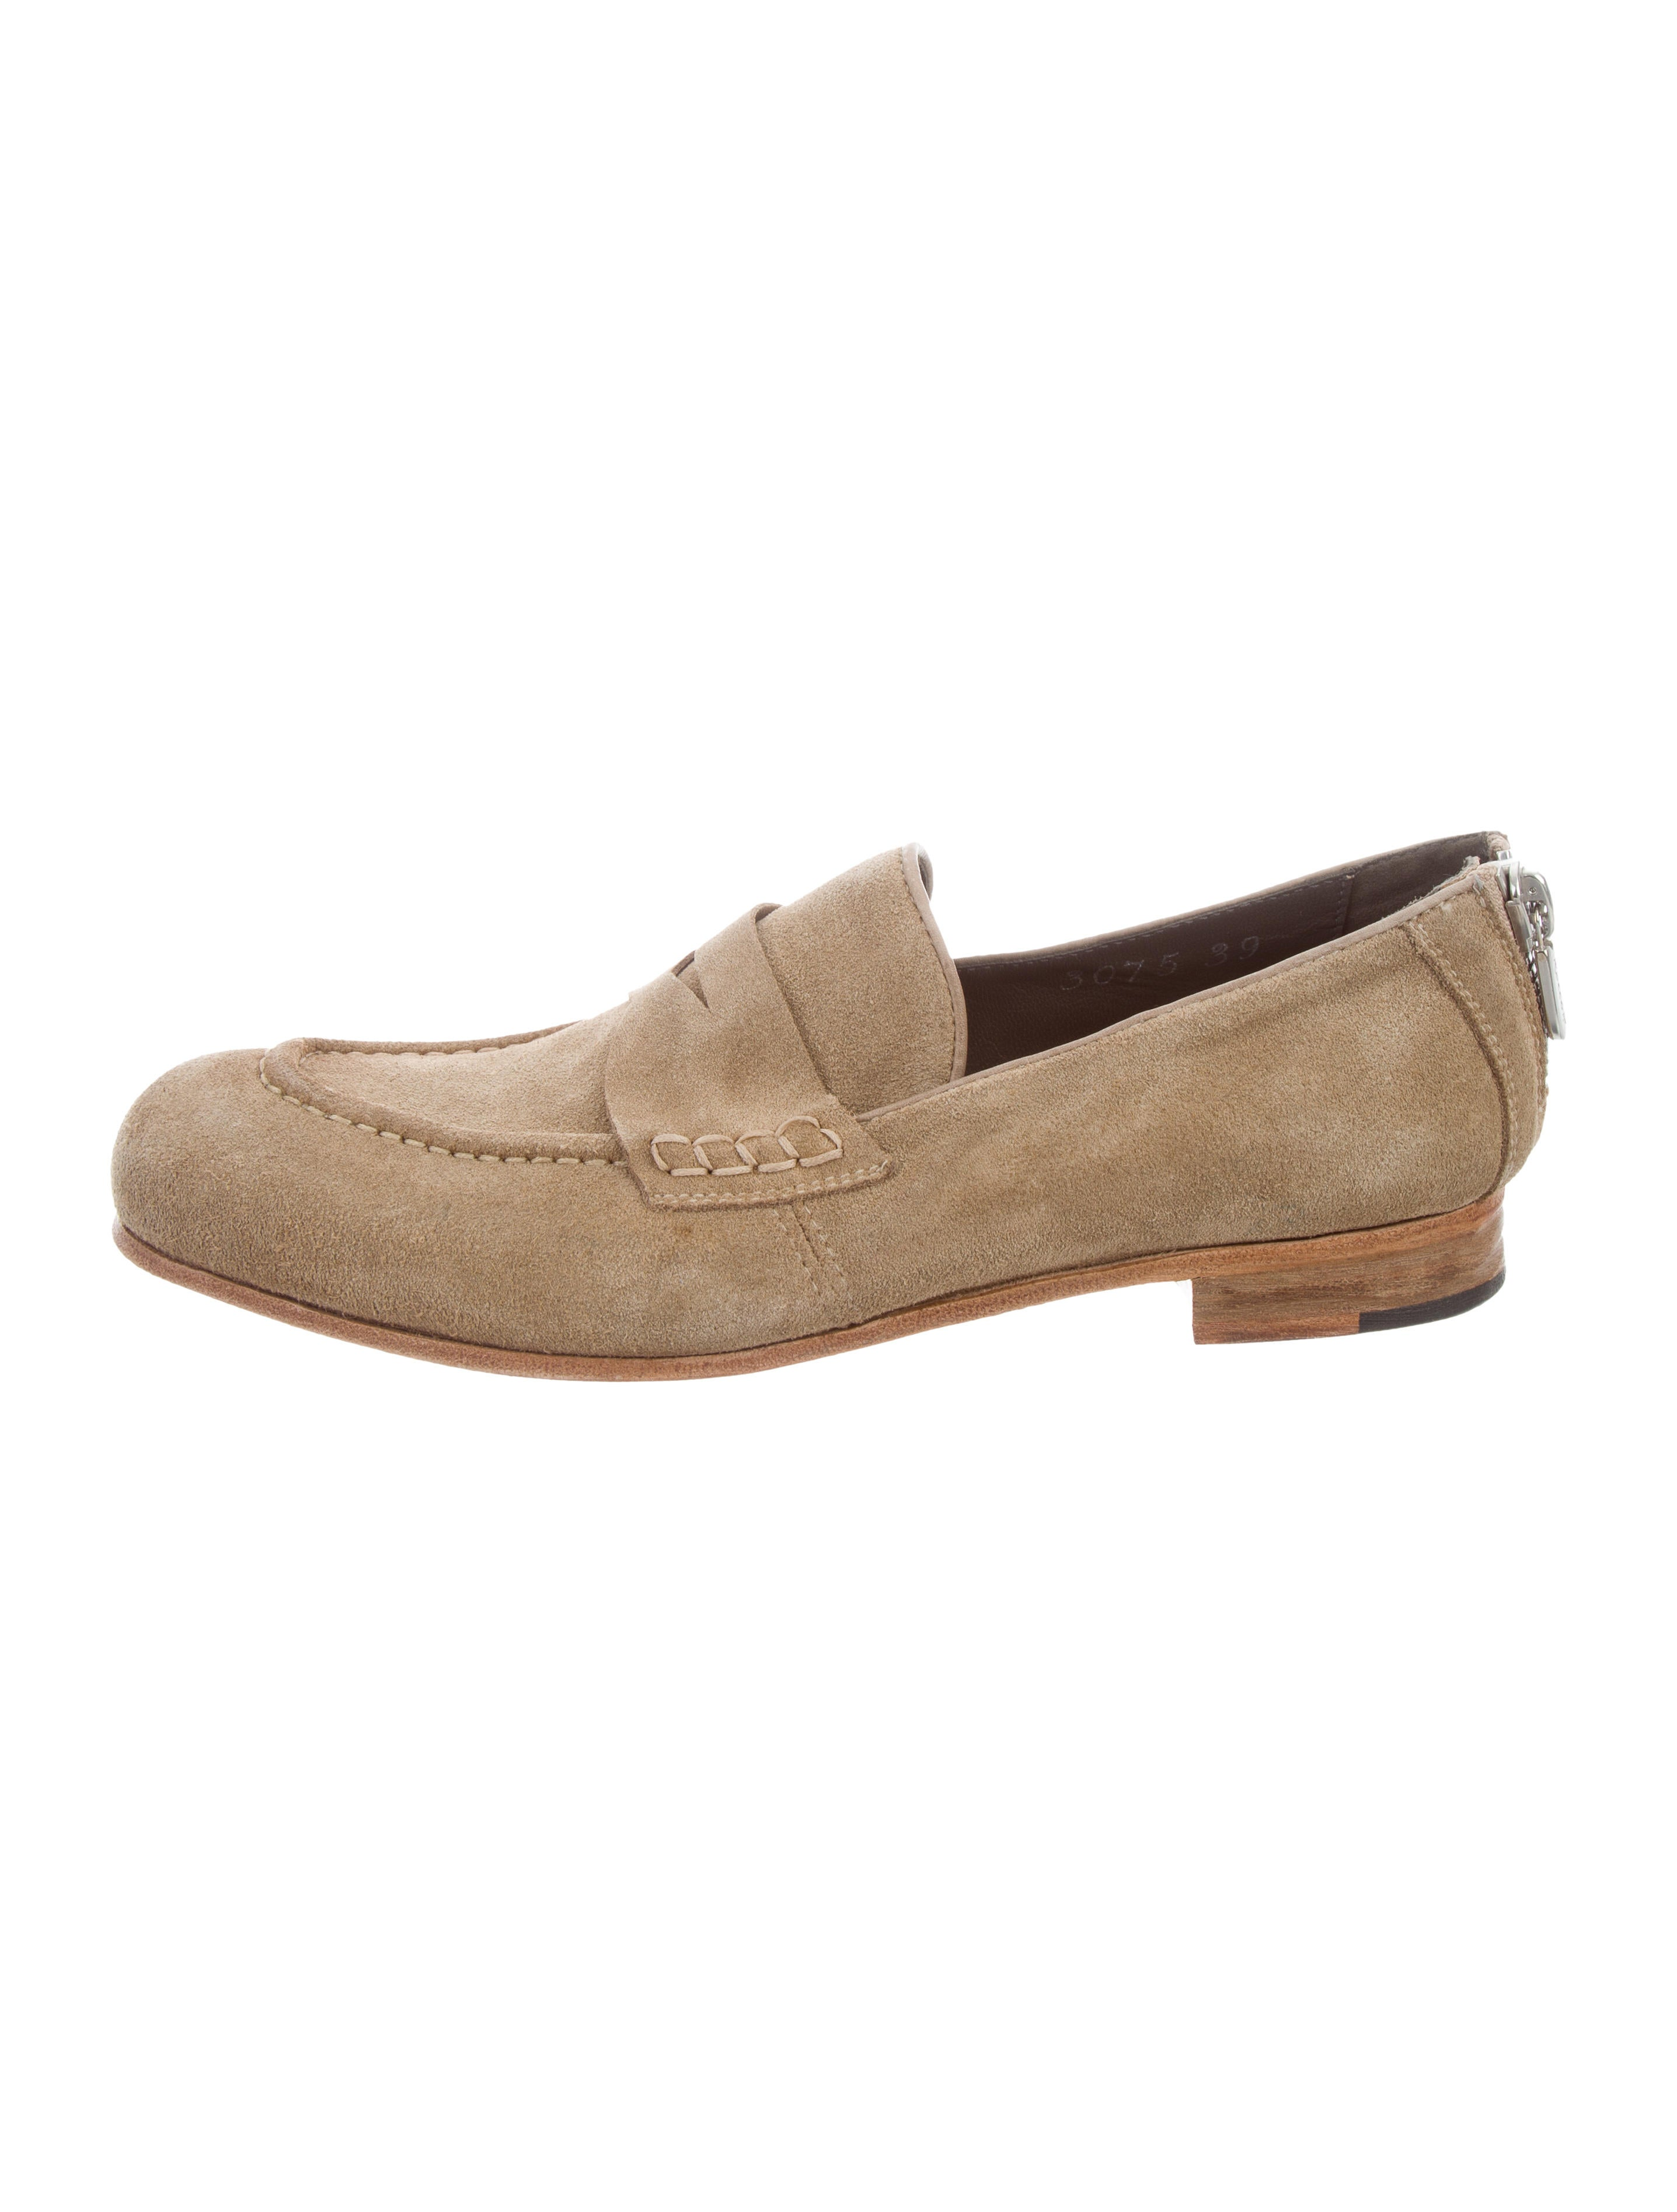 Rocco P. Leather Penny Loafers w/ Tags 2014 newest cheap online MAvrZgR